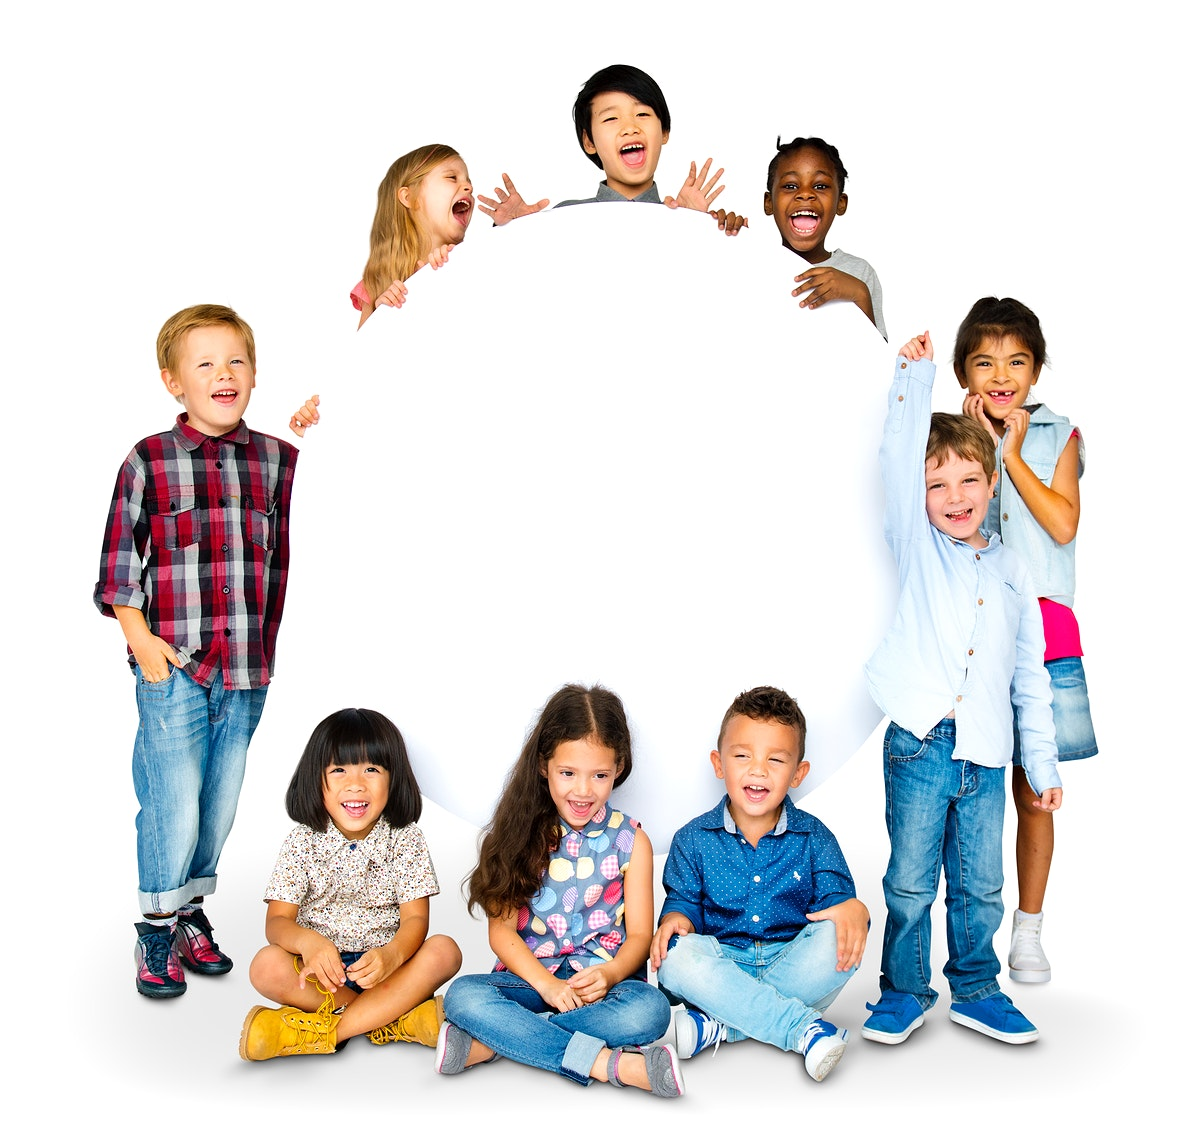 Happiness group of cute and adorable children with copy space